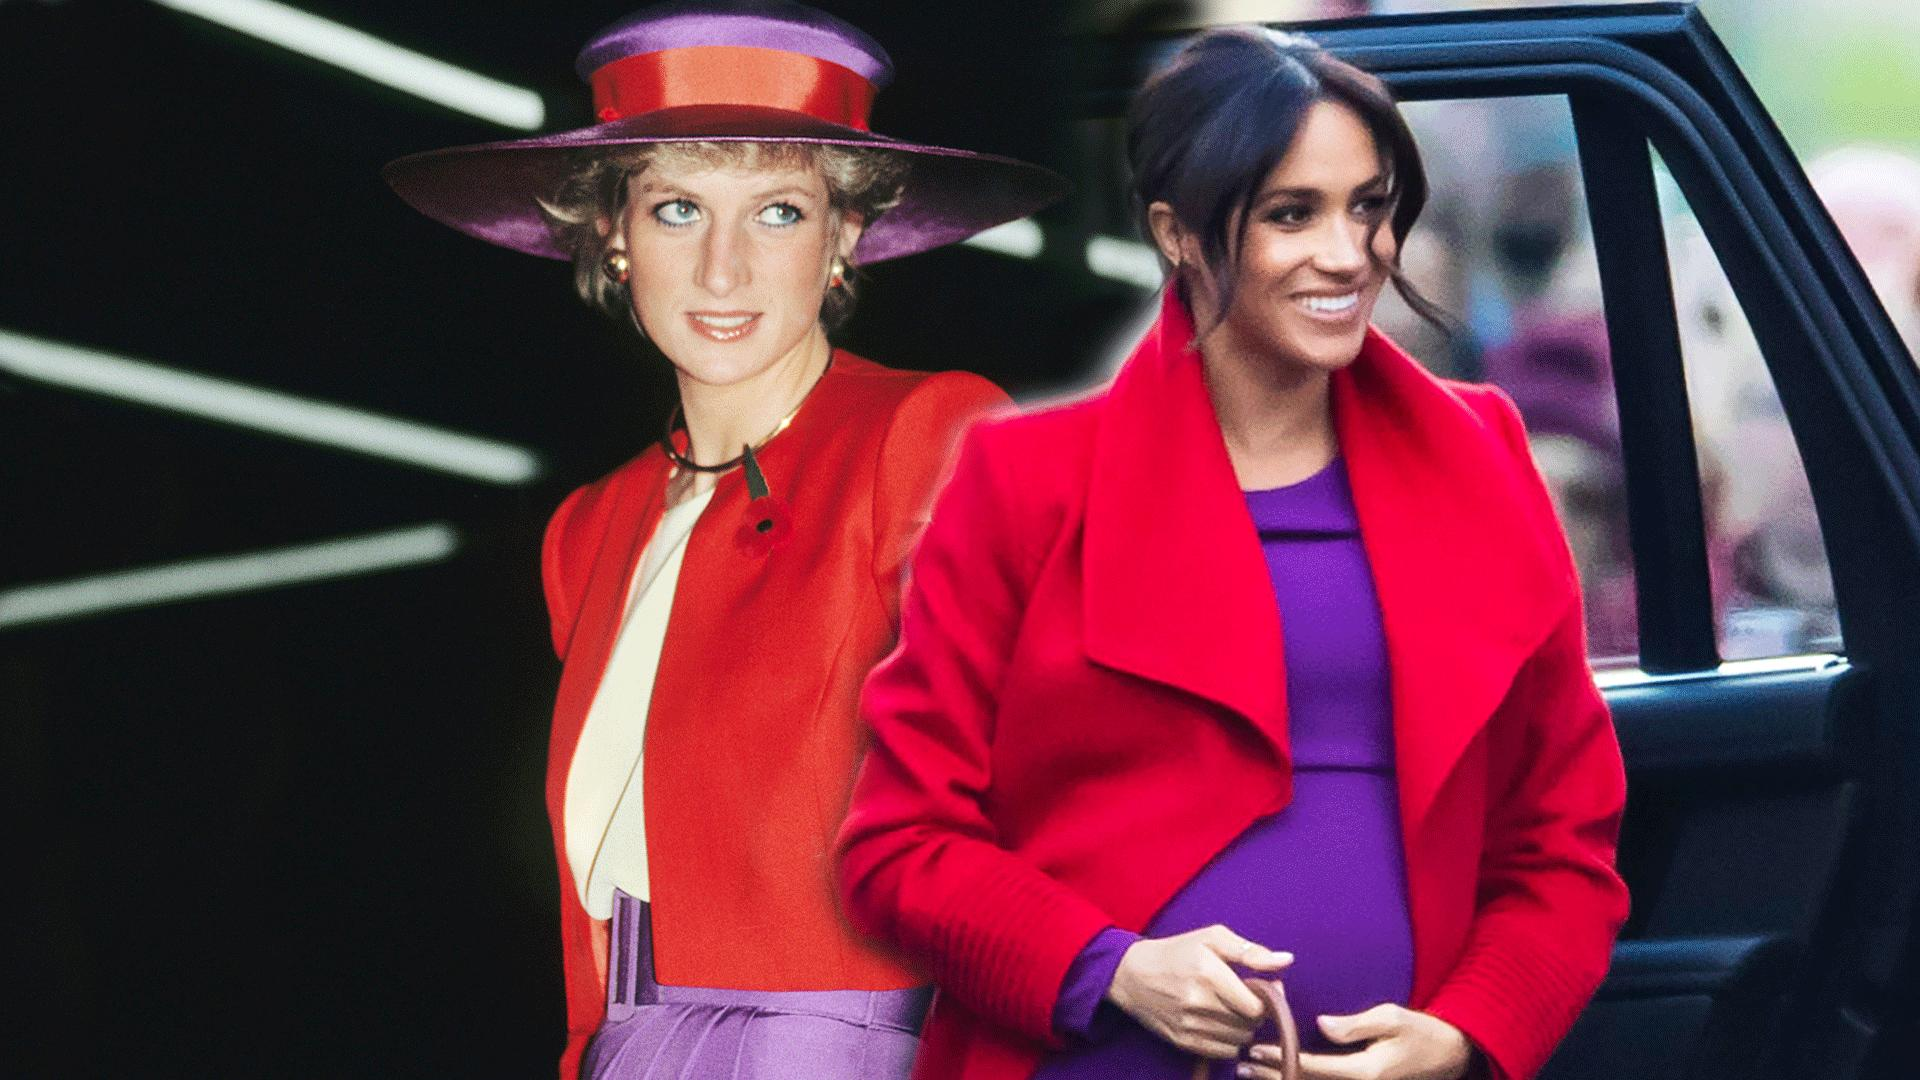 Meghan Markle Looks Like Princess Diana in Her Bold Red-and-Purple Outfit 1d4adfc000d32